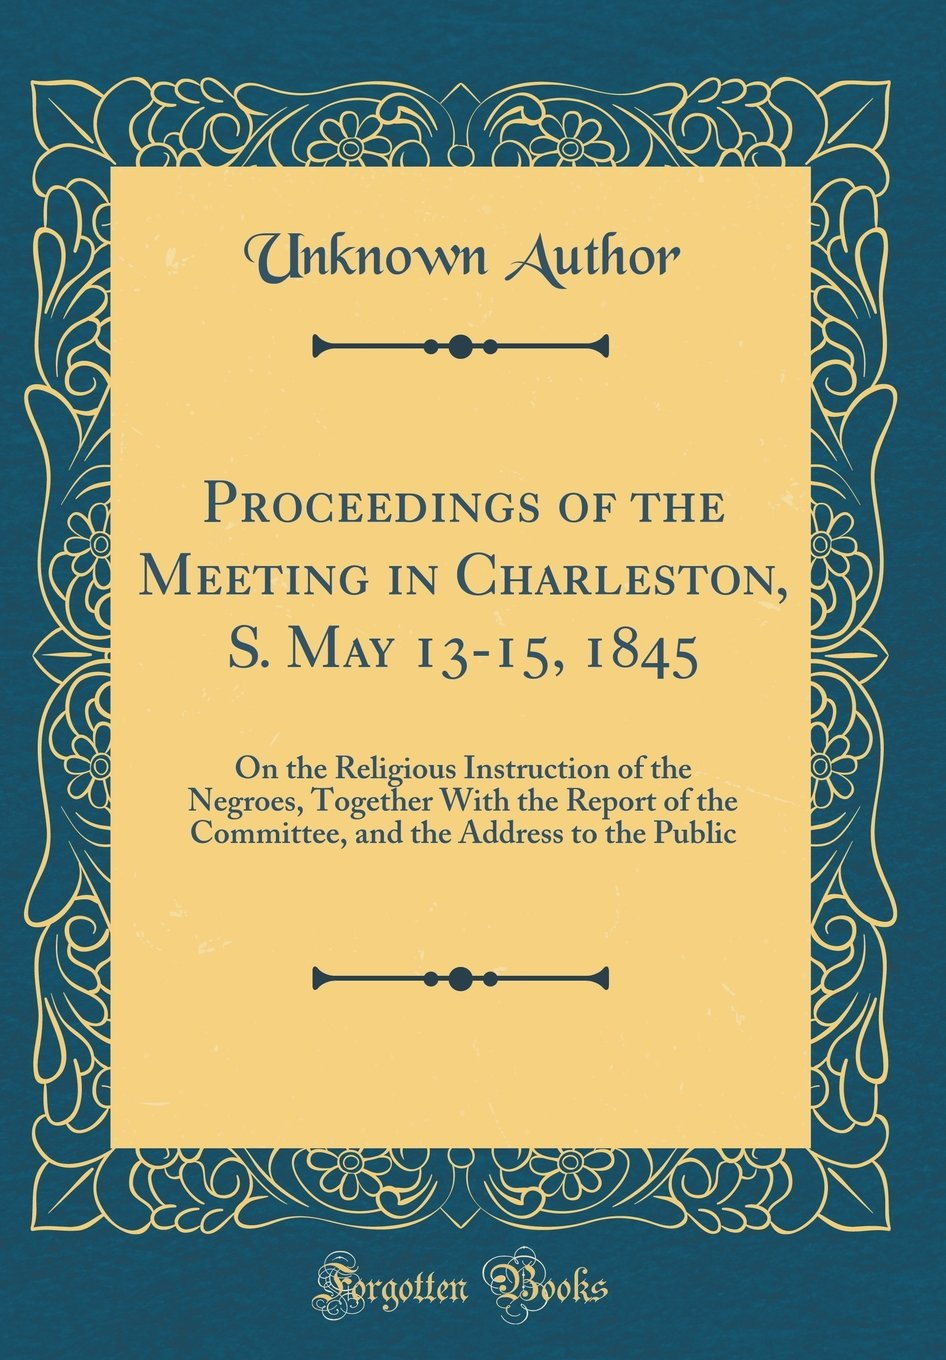 Proceedings of the Meeting in Charleston, S. May 13-15, 1845: On the Religious Instruction of the Negroes, Together With the Report of the Committee, and the Address to the Public (Classic Reprint) PDF